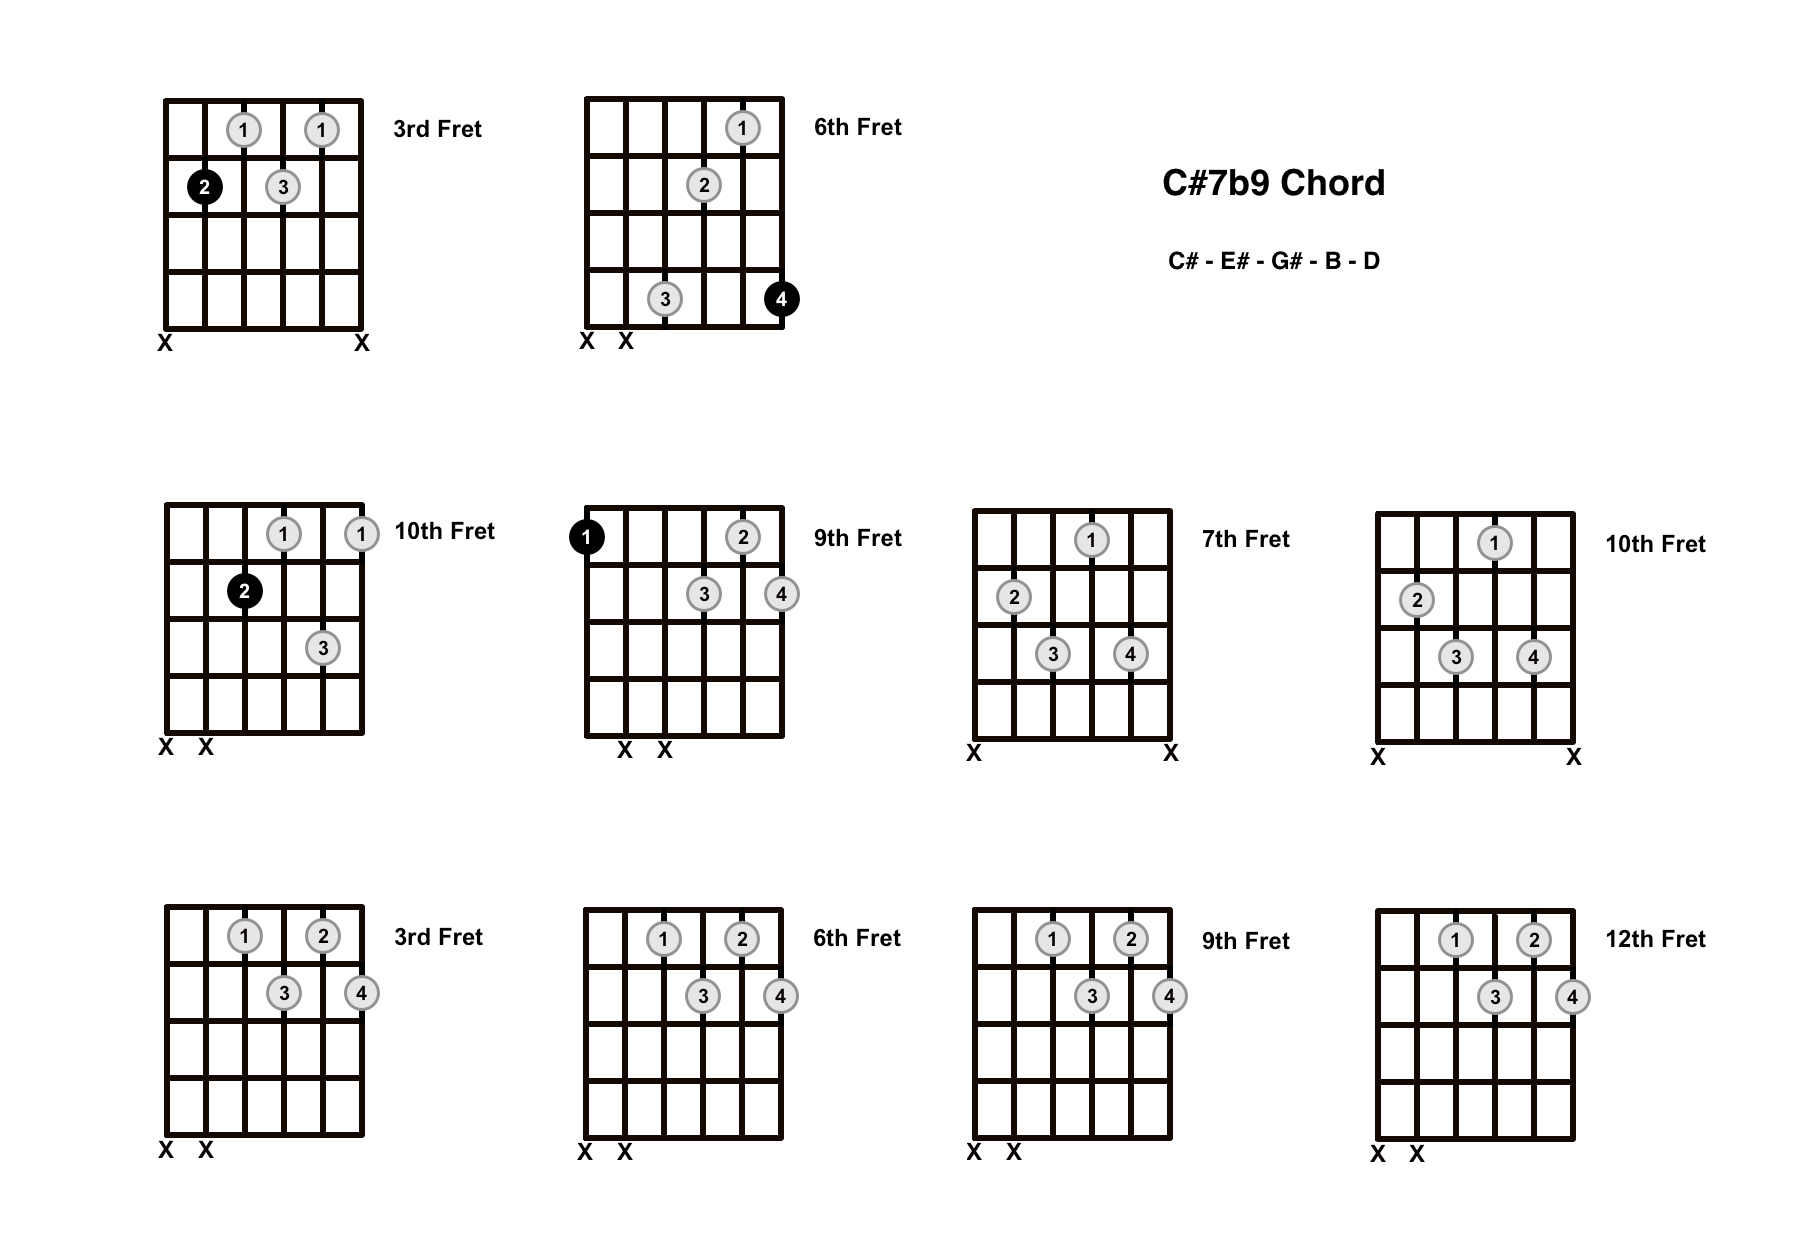 C#7b9 Chord On The Guitar (C Sharp 7 Flat 9) – Diagrams, Finger Positions and Theory